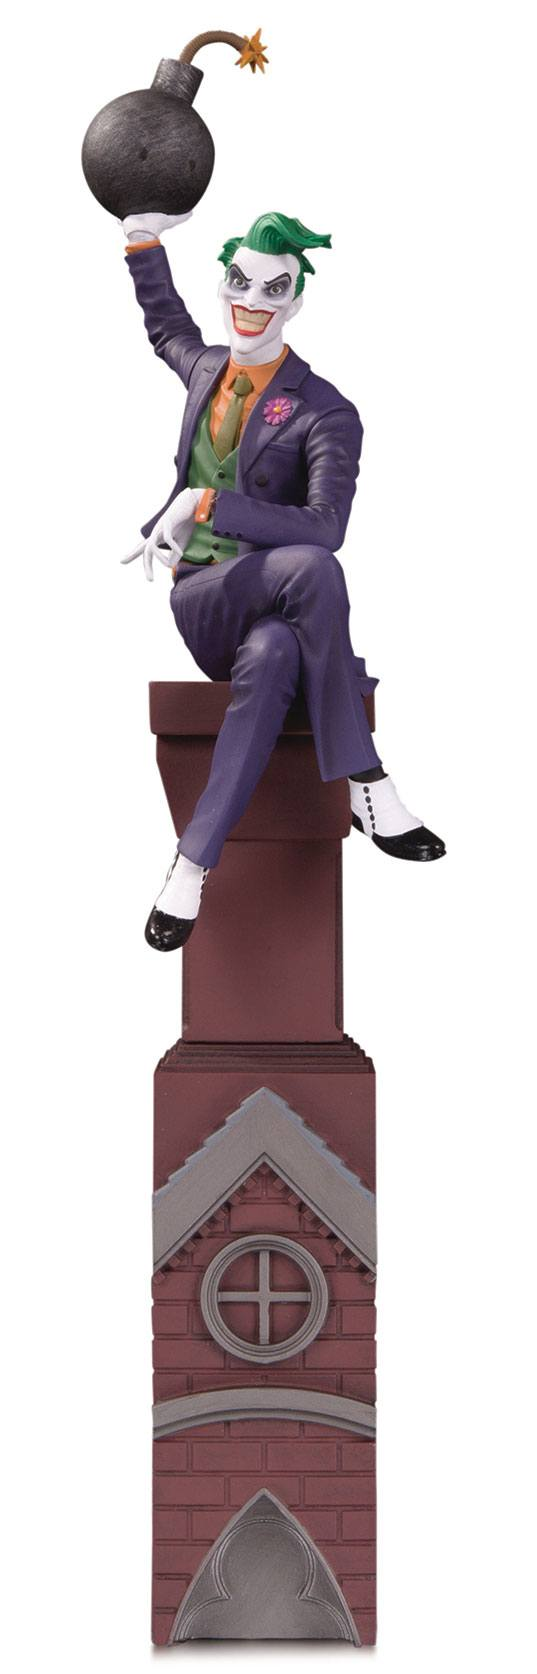 DC Collectibles Batman Rogues Gallery The Joker (Part 2 of 6) Statue